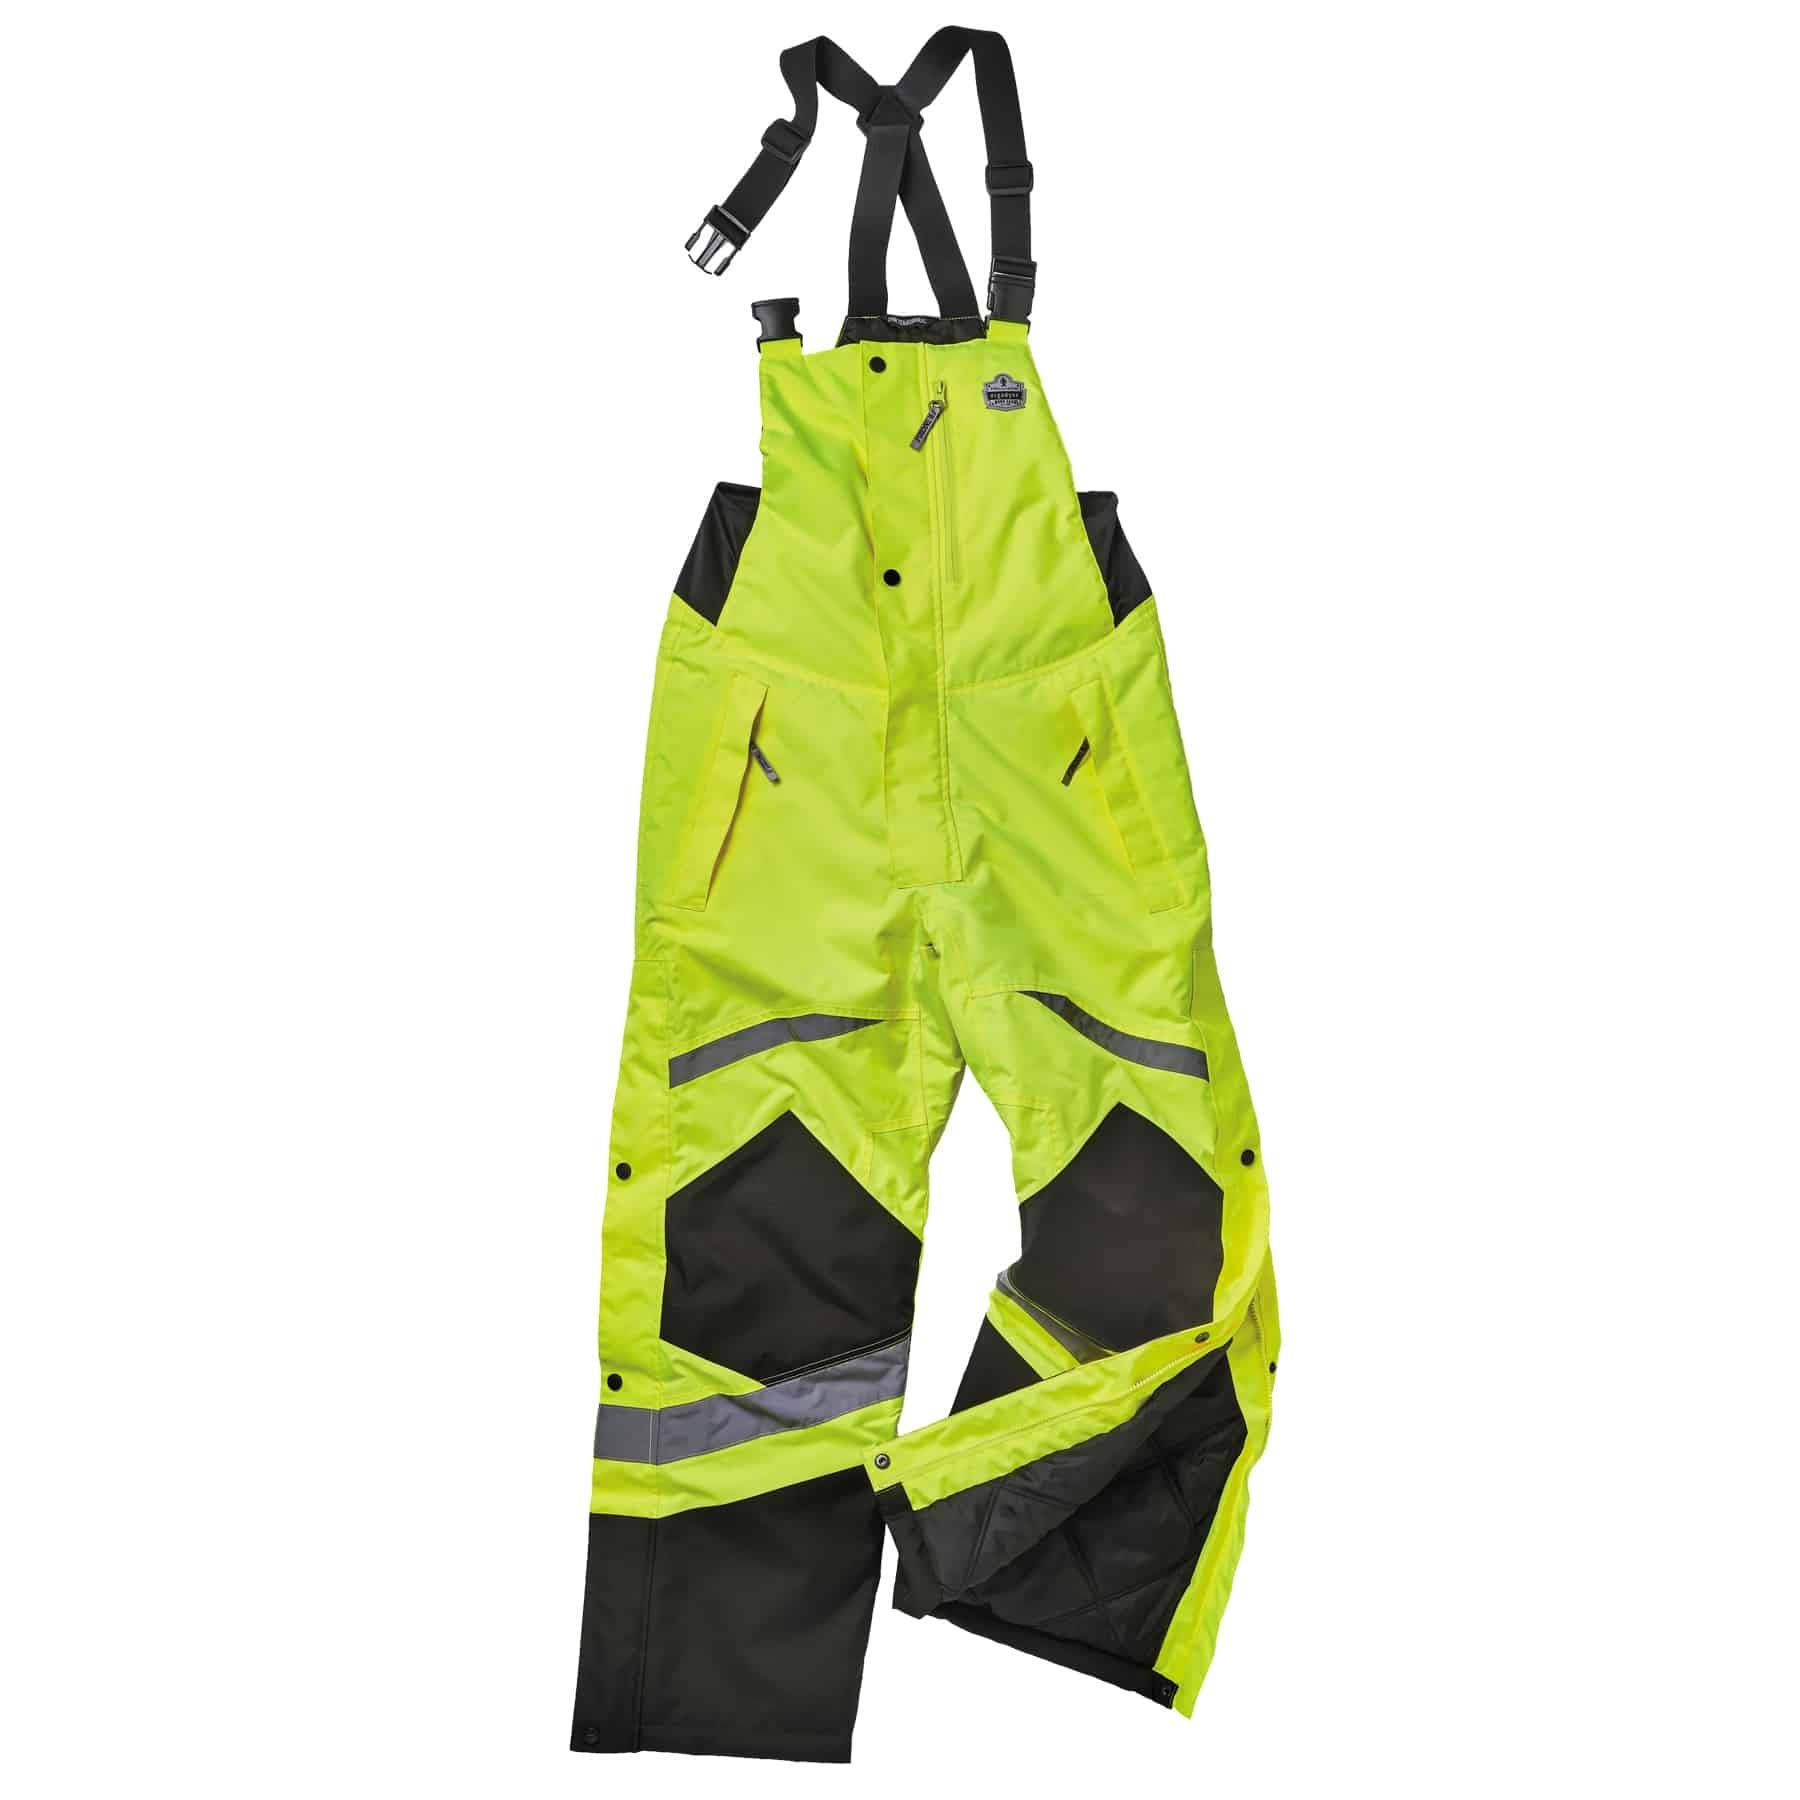 Insulated Thermal Bib Overalls, High Visibility, Weather-Resistant, 2XL, Ergodyne GloWear 8928